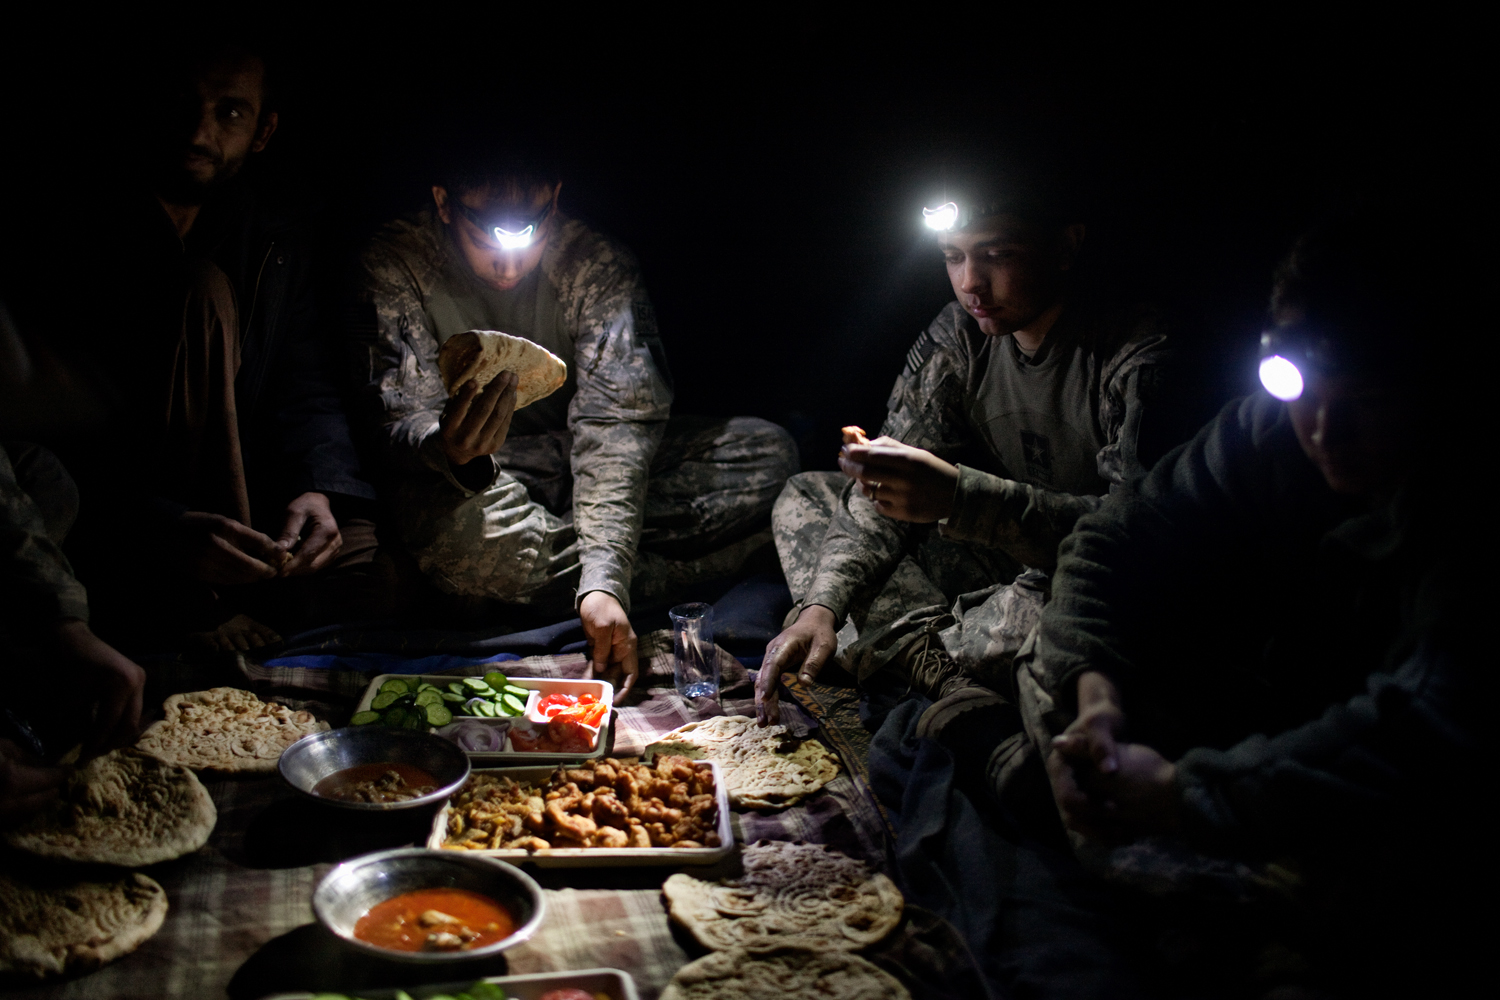 U.S. Army soldiers eat a meal prepared by Afghan labourers who work at Observation Post Dallas in the Korengal Valley, Kunar Province, Afghanistan.